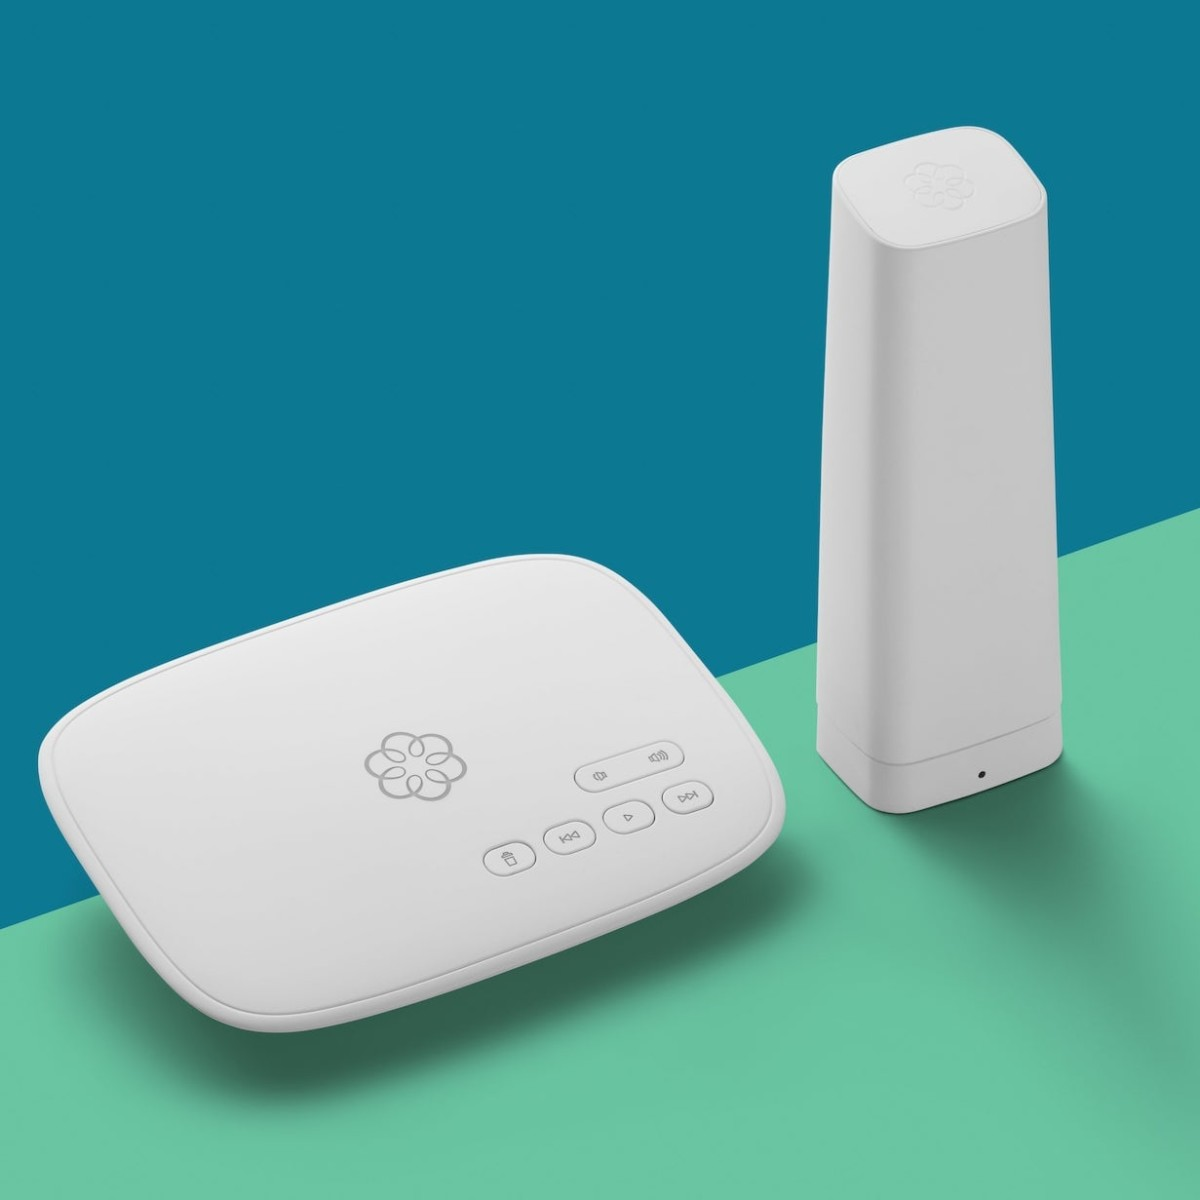 Ooma Telo 4G Internet & Phone Service provides always-on wireless home phone service and backup internet